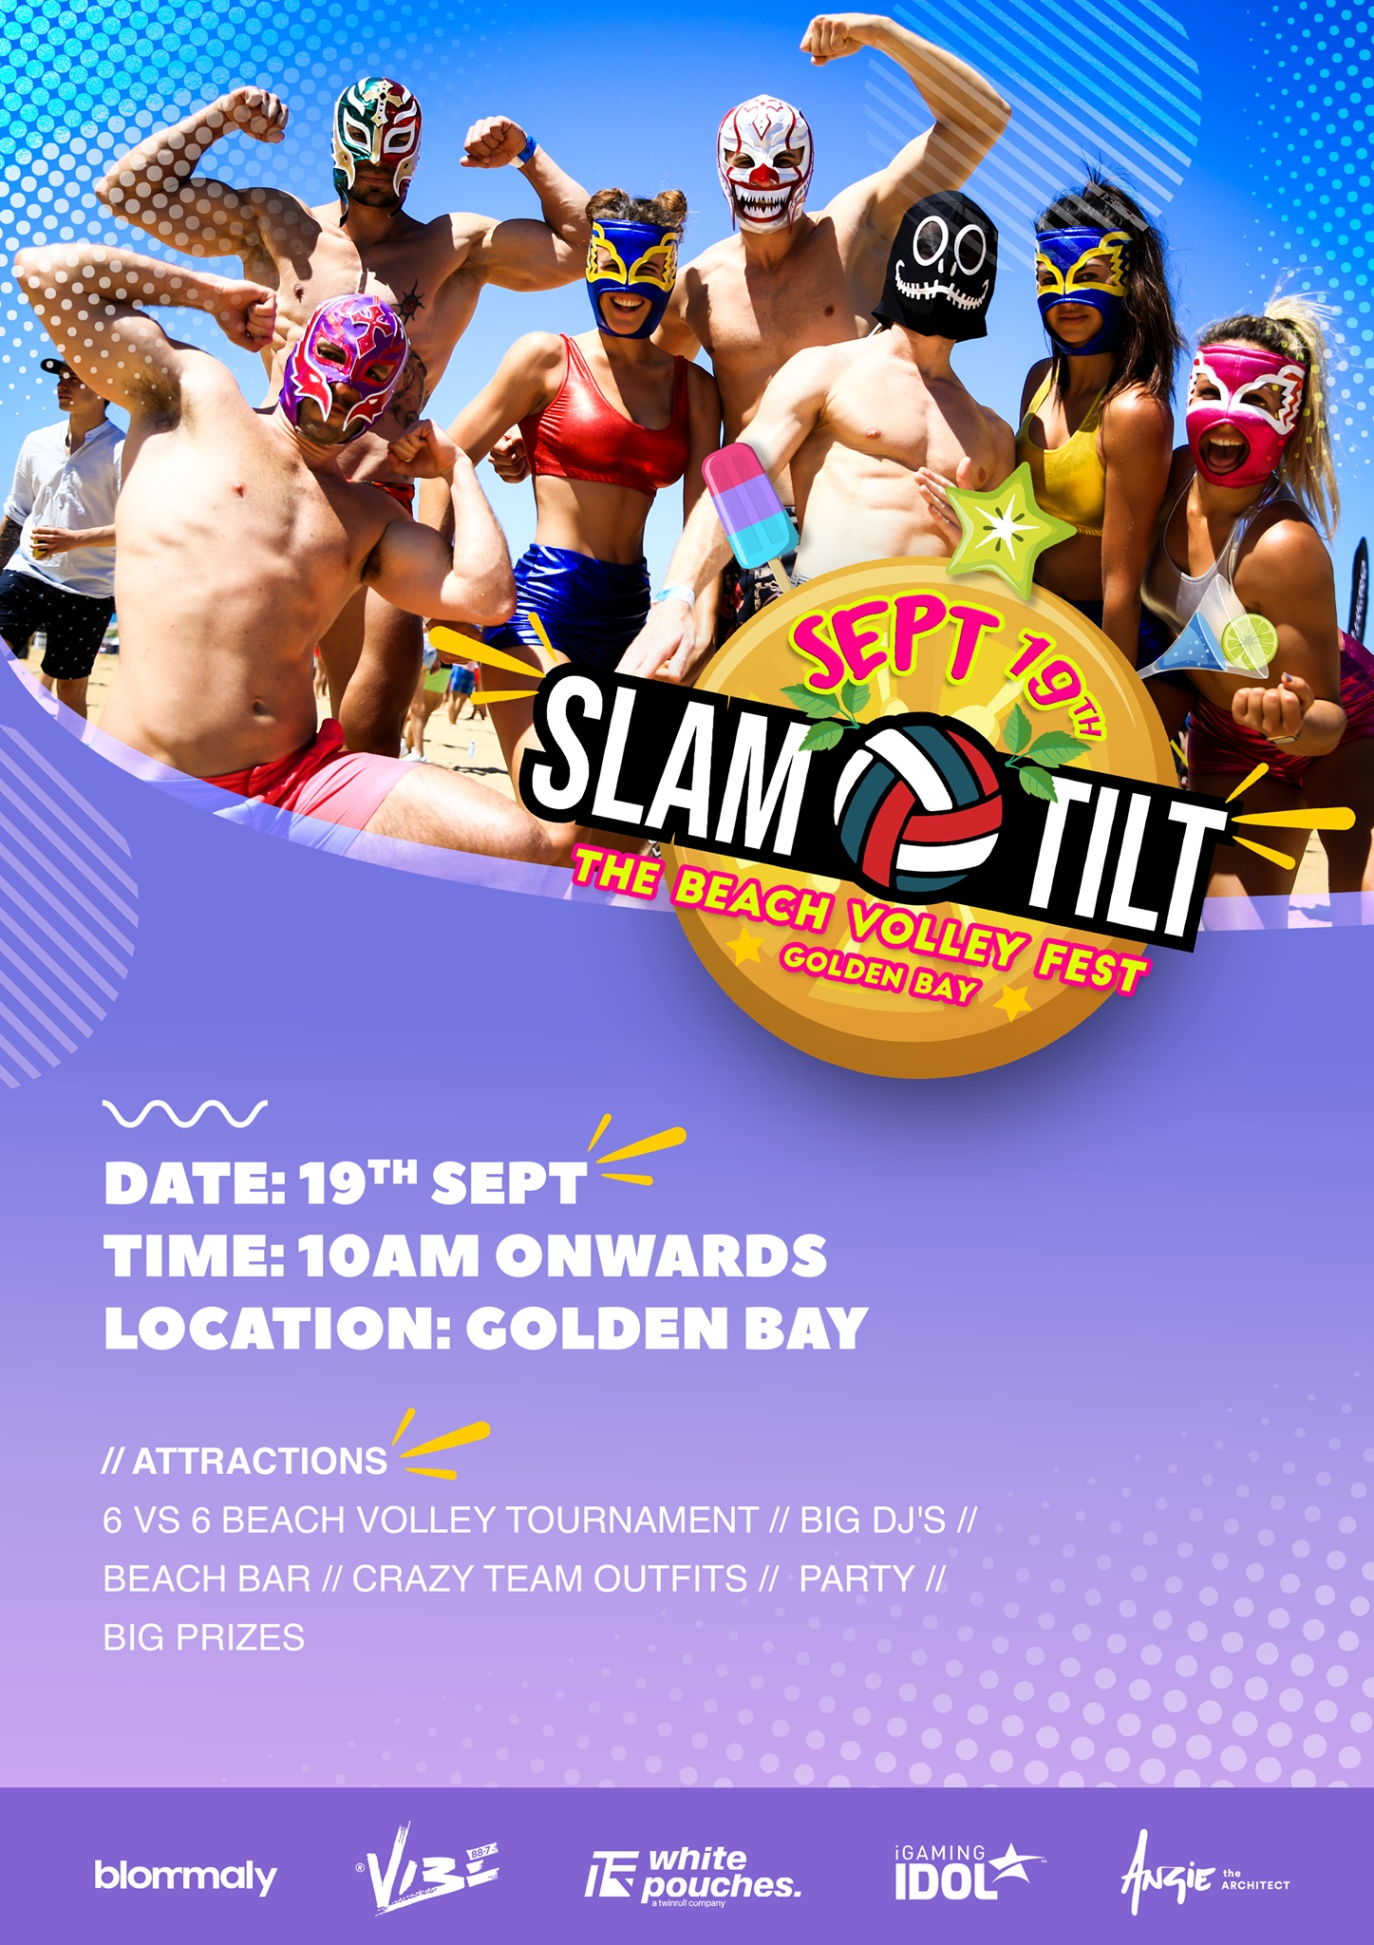 Slam tilt - The Beach Volley Fest flyer